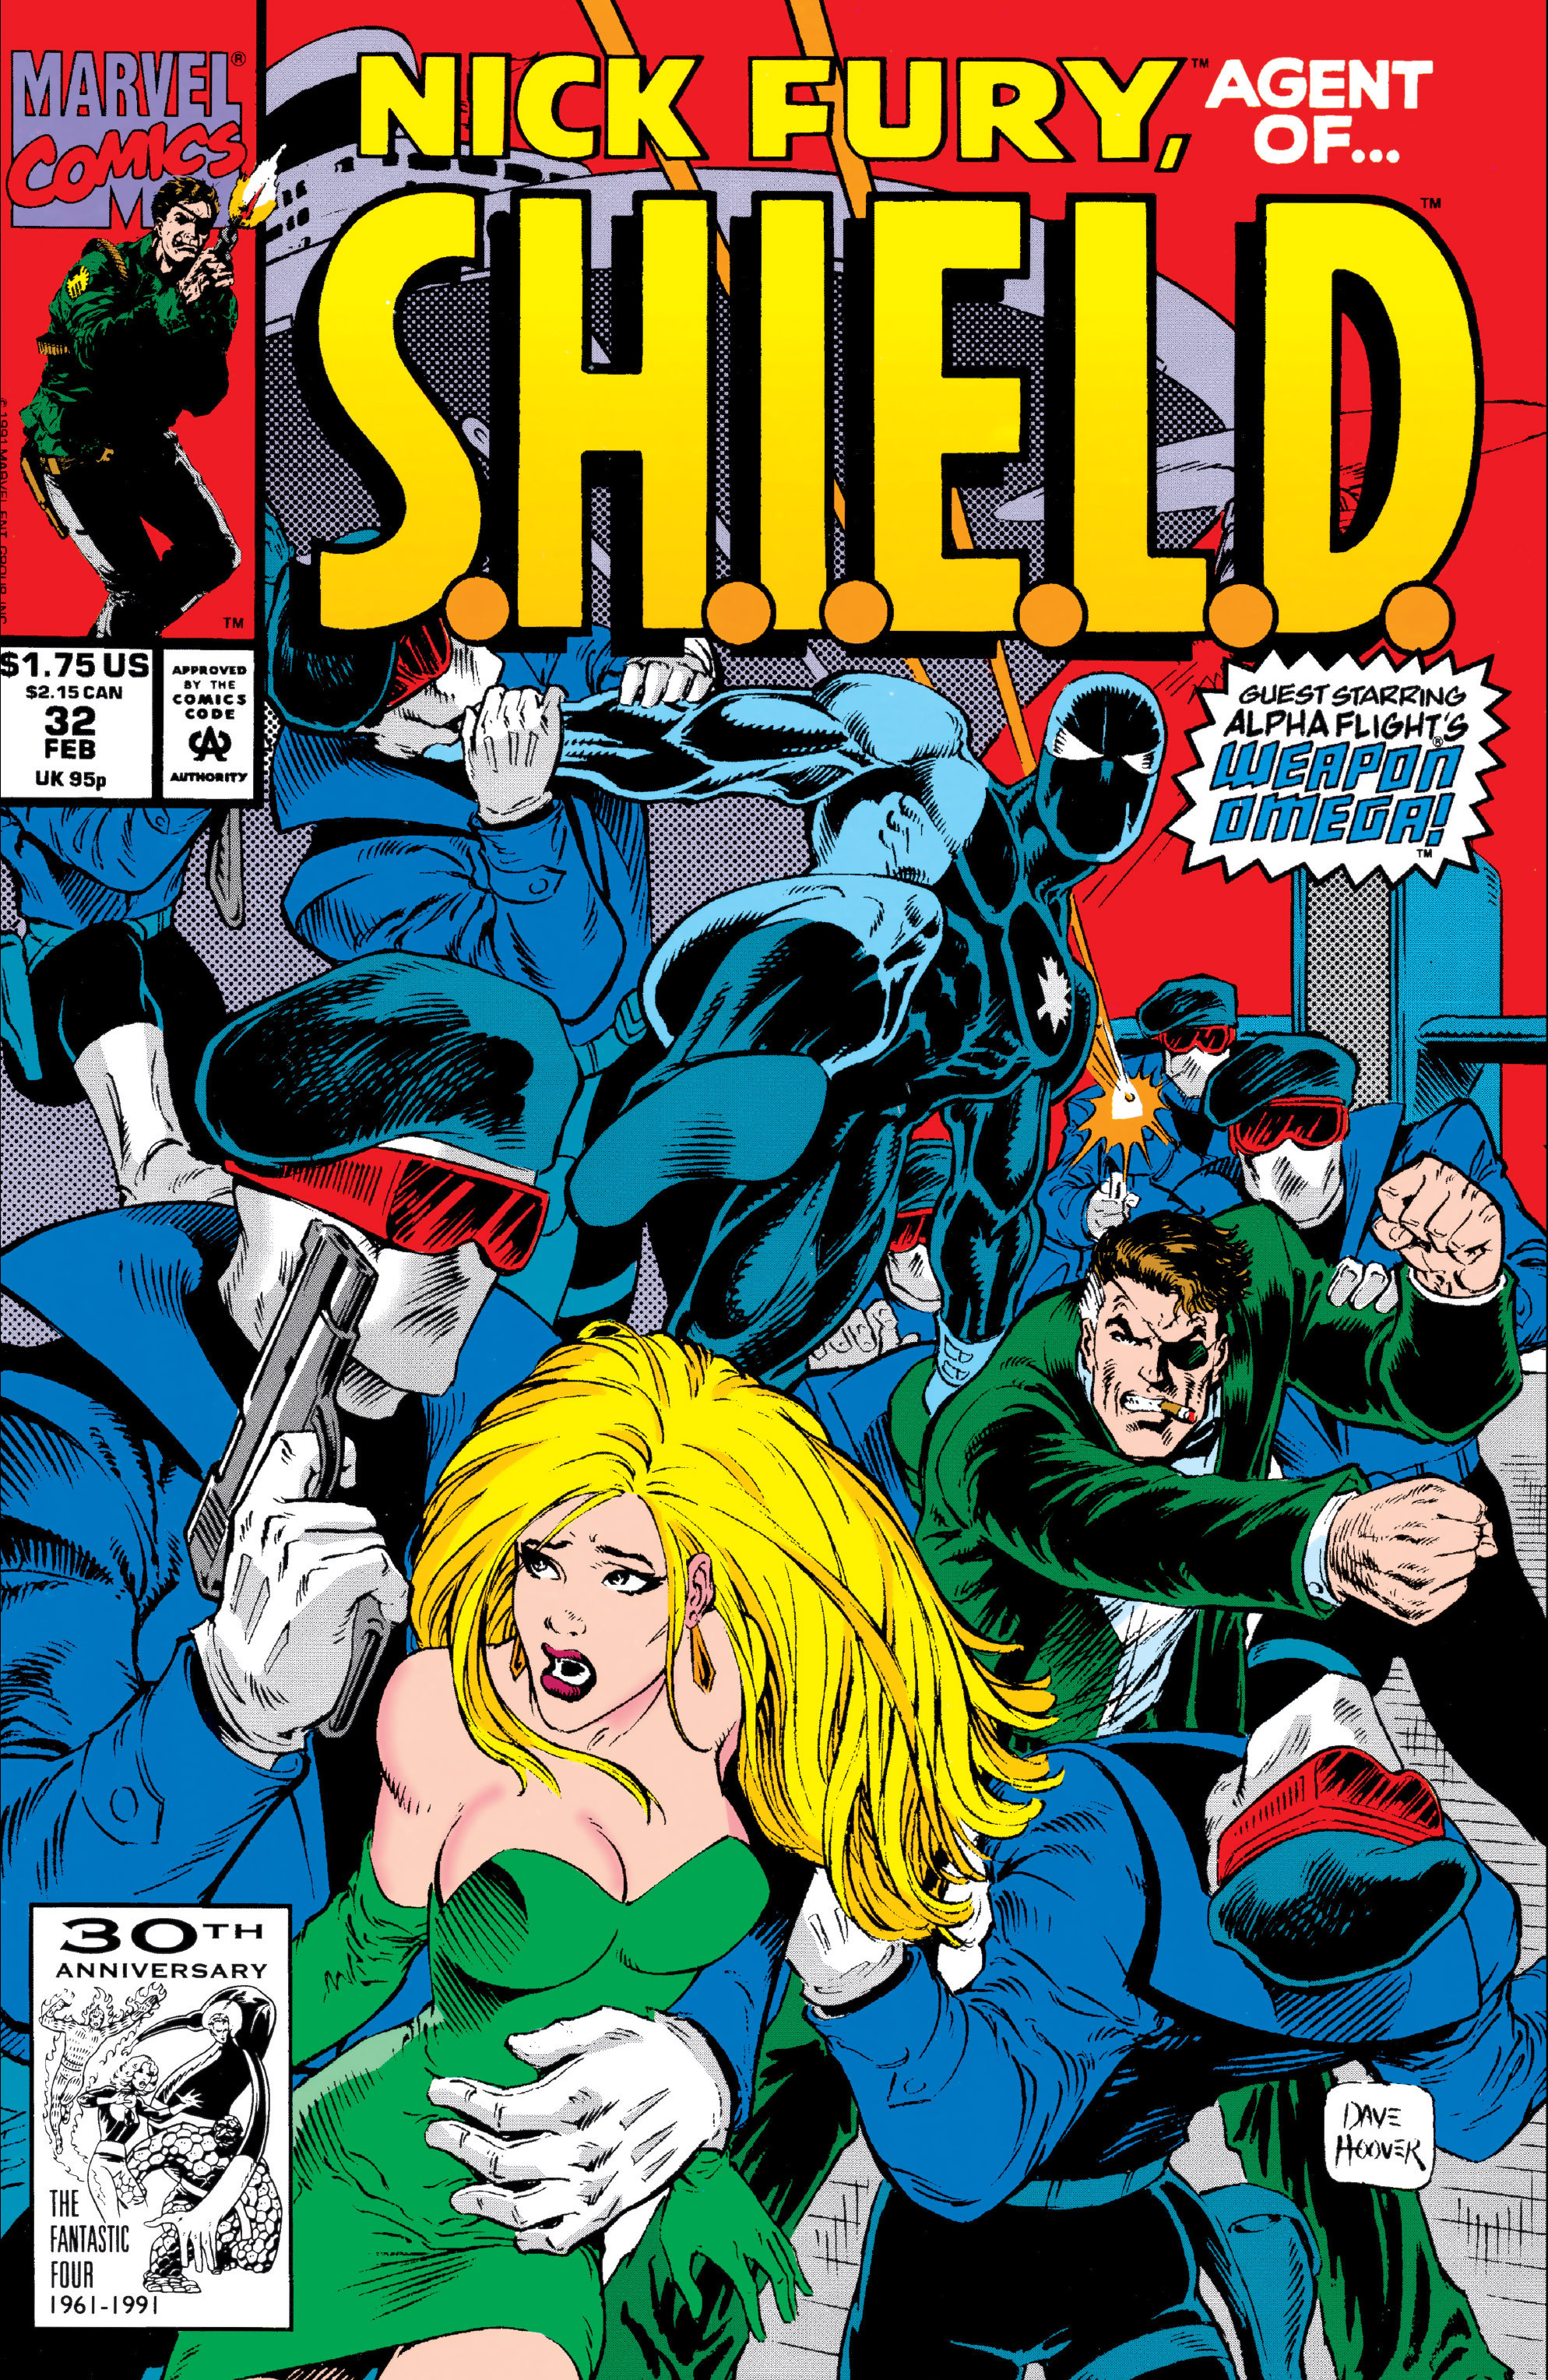 Nick Fury, Agent of S.H.I.E.L.D. Vol 3 32